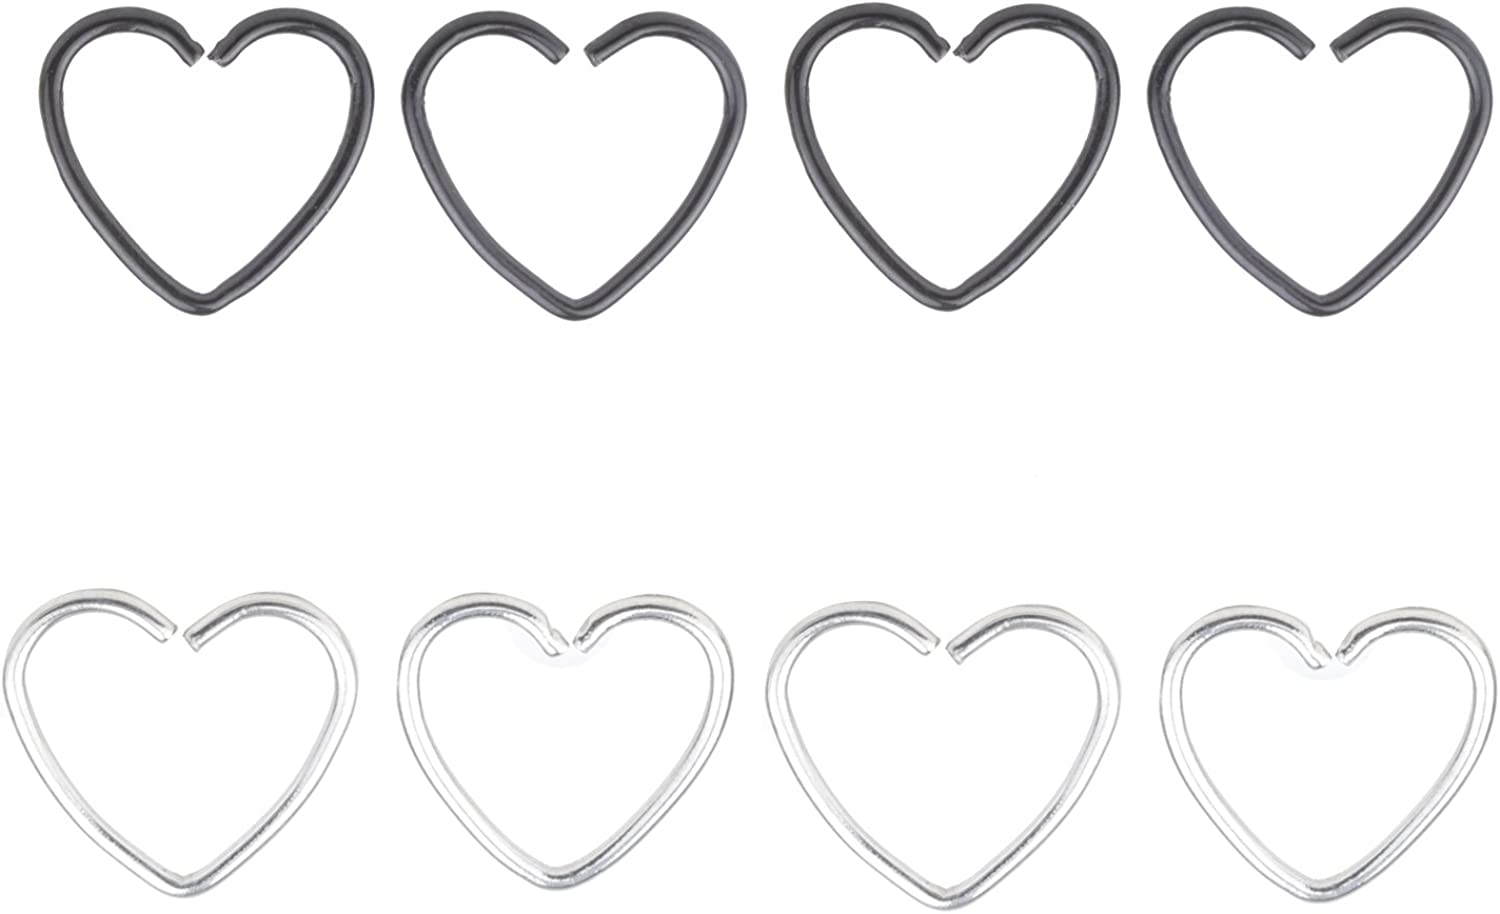 20G Heart Ear Nose Piercing Helix Cartilage Tragus Earring Stud Hoop Ring 8mm Surgical Stainless